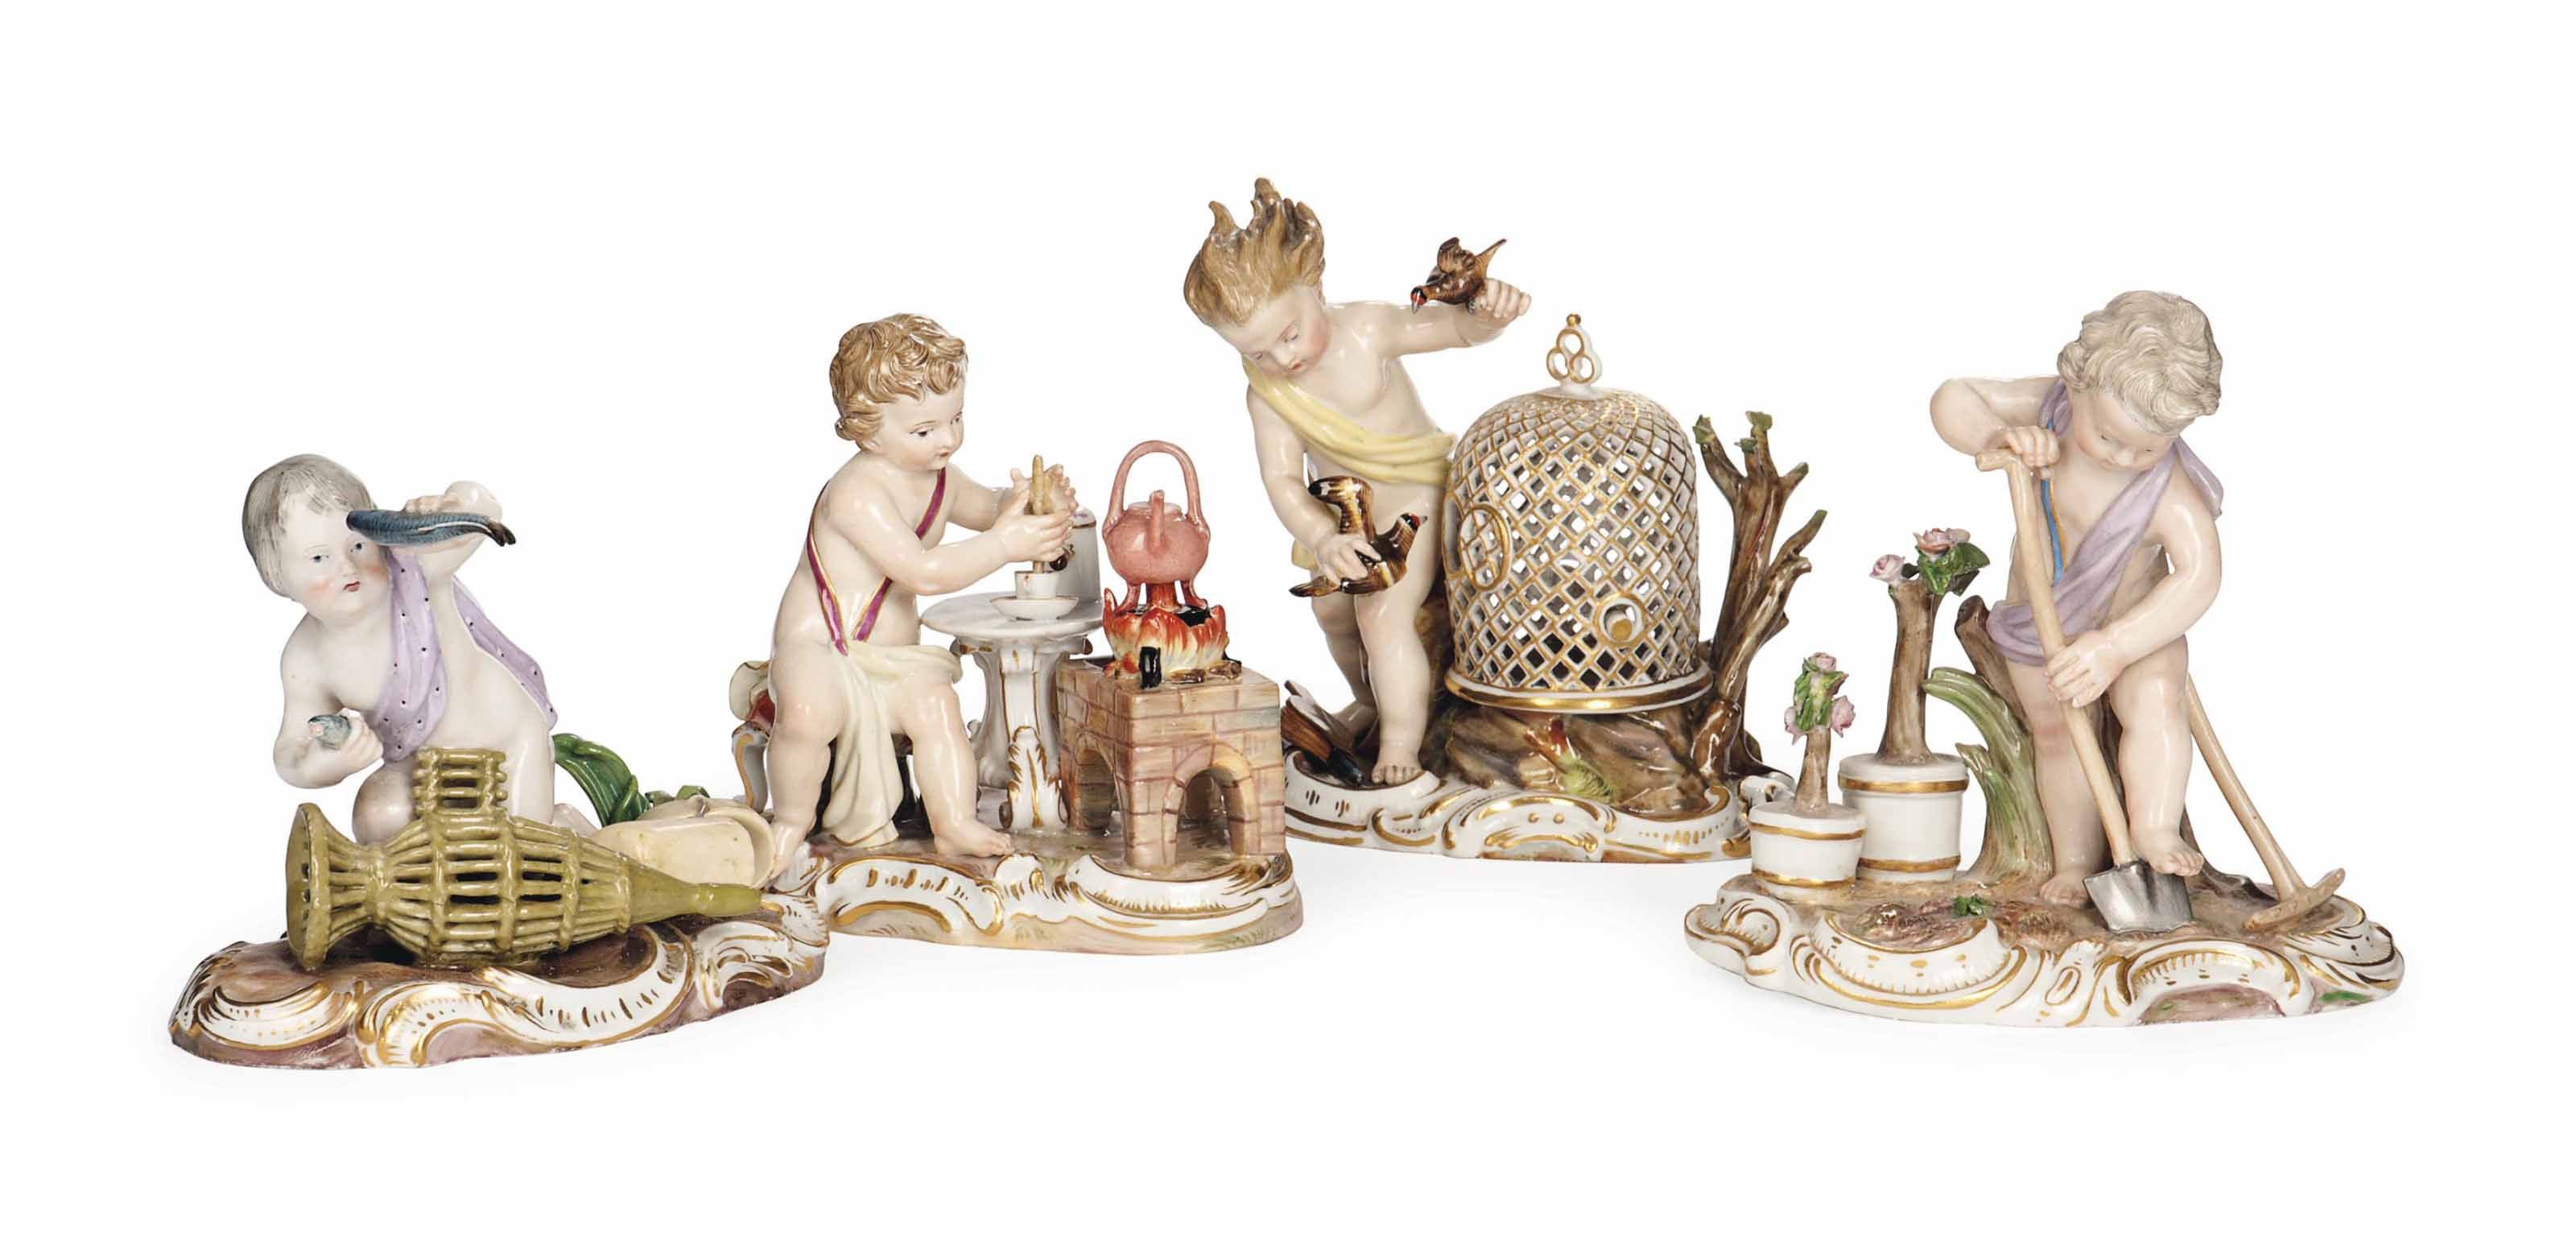 FOUR MEISSEN FIGURE GROUPS EMBLEMATIC OF THE ELEMENTS